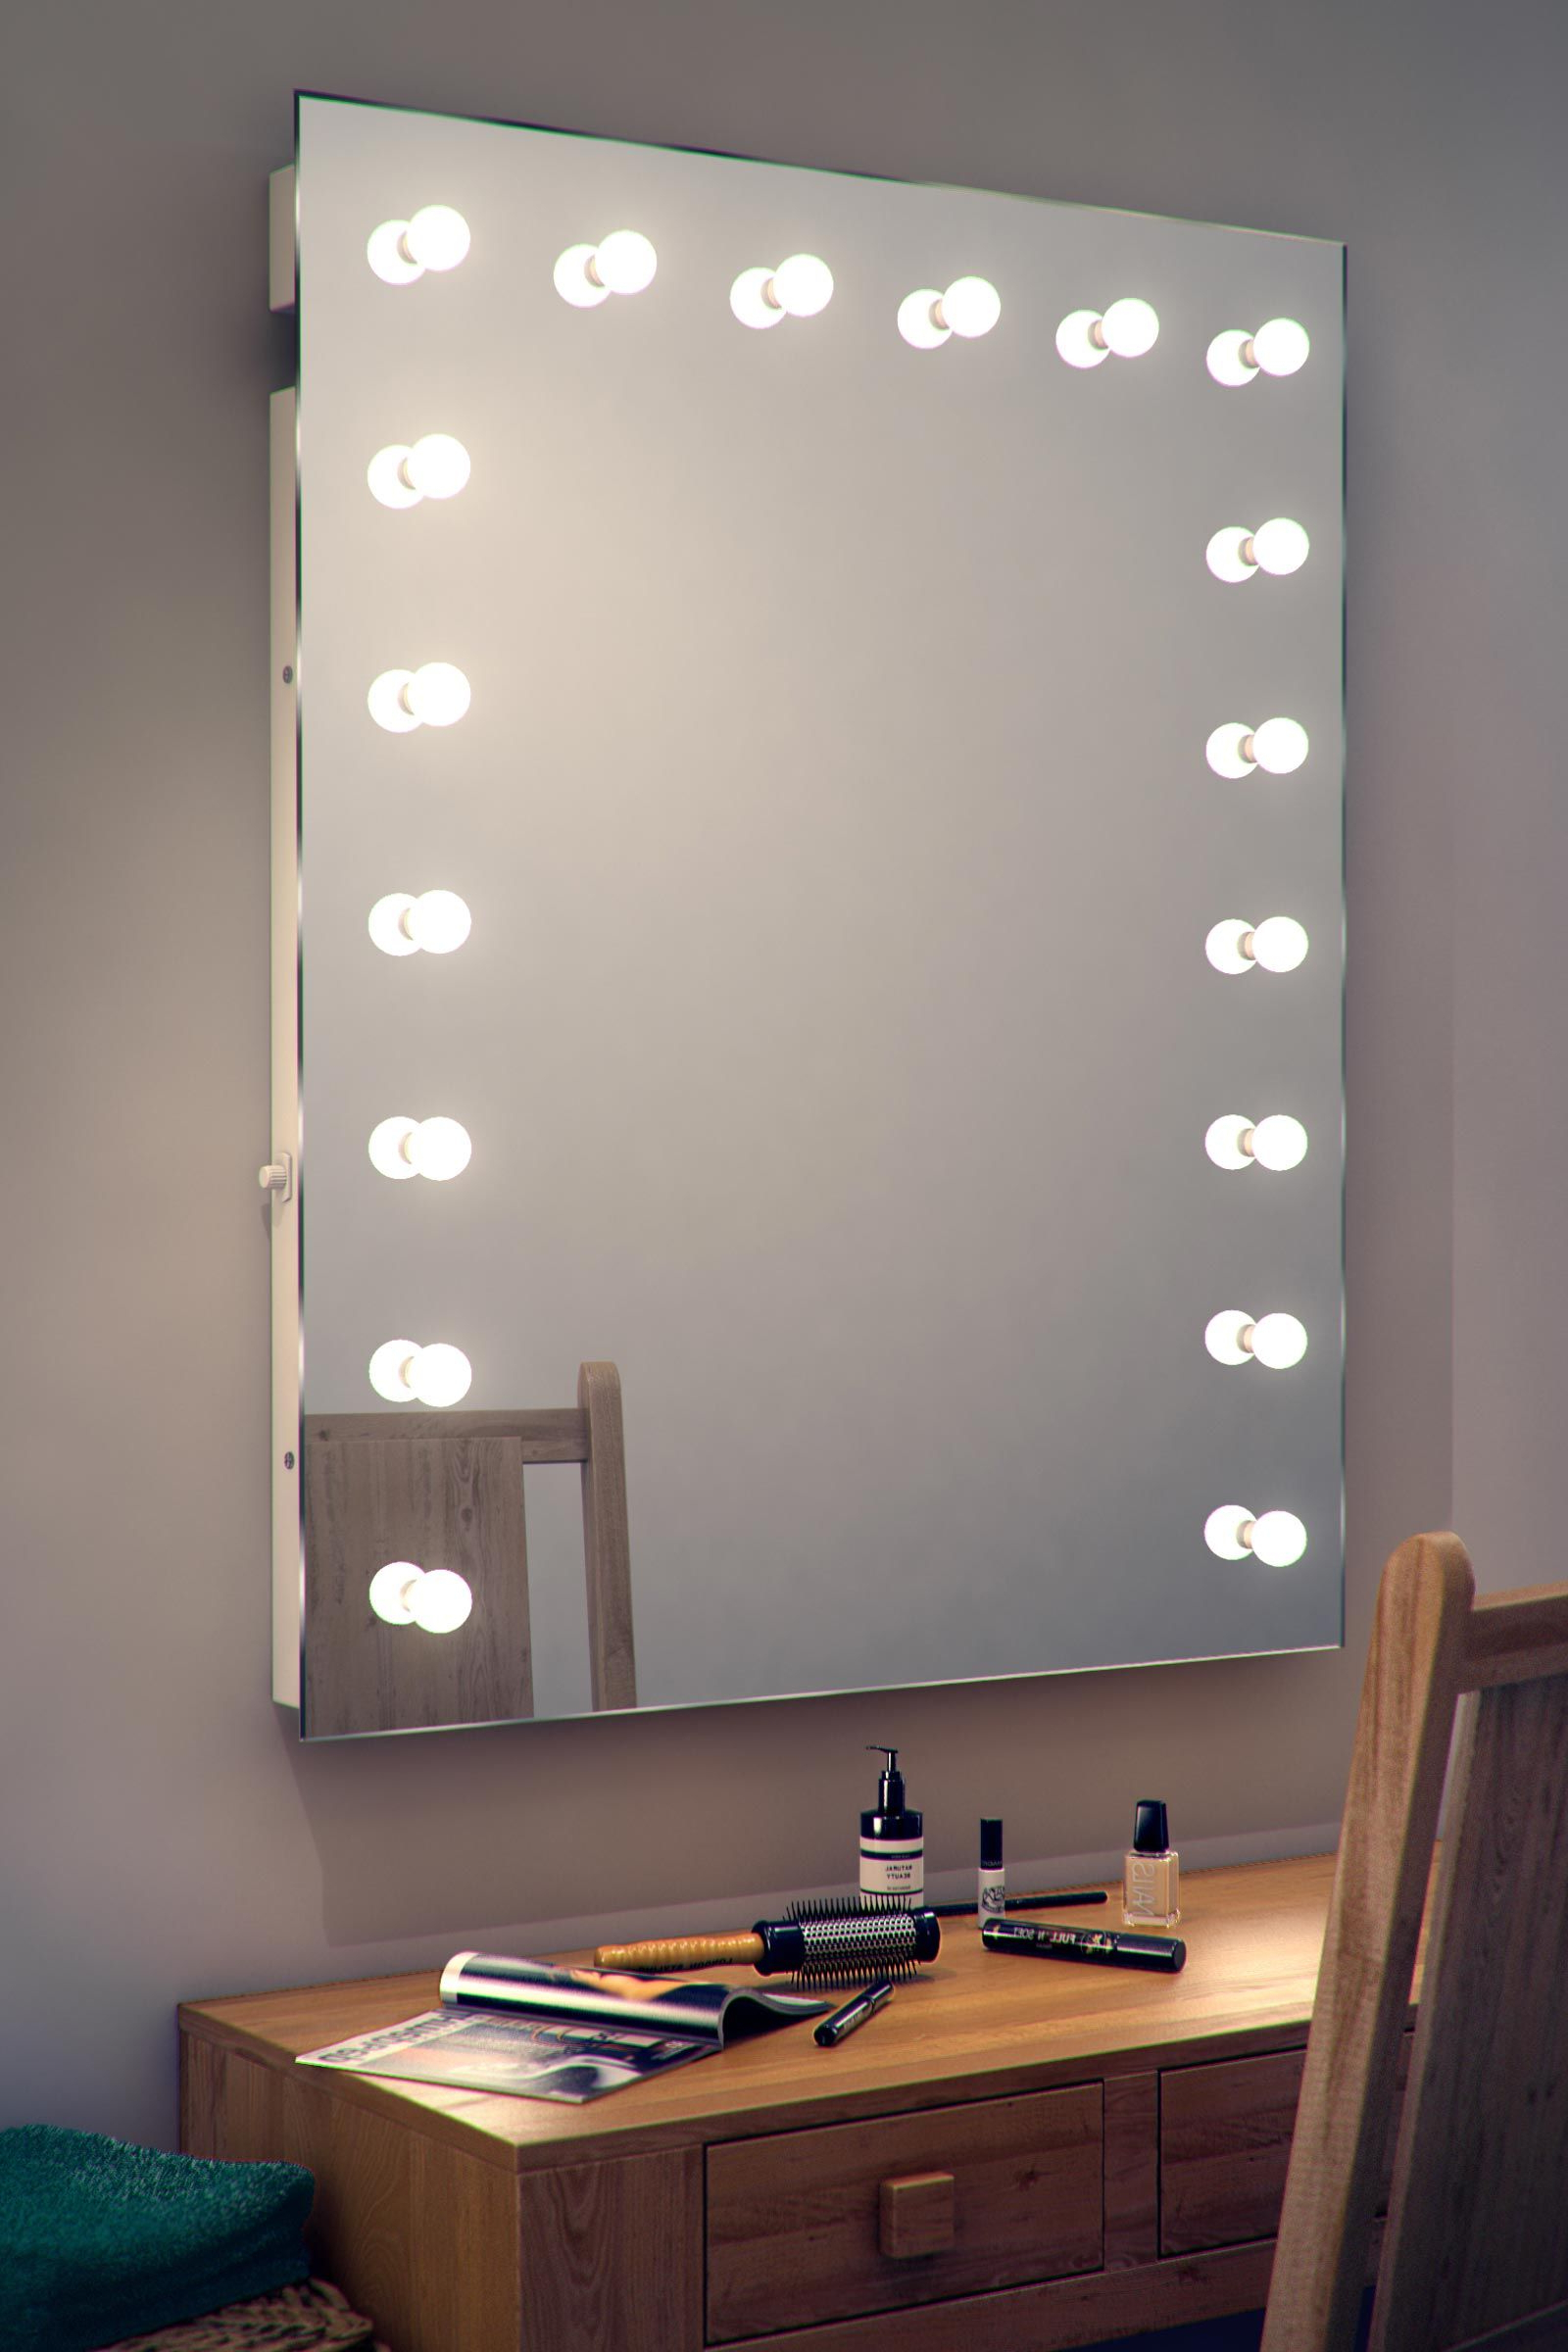 Details About Hollywood Makeup Dressing Room Mirror With Pertaining To Fashionable Make Up Wall Mirrors (View 12 of 20)